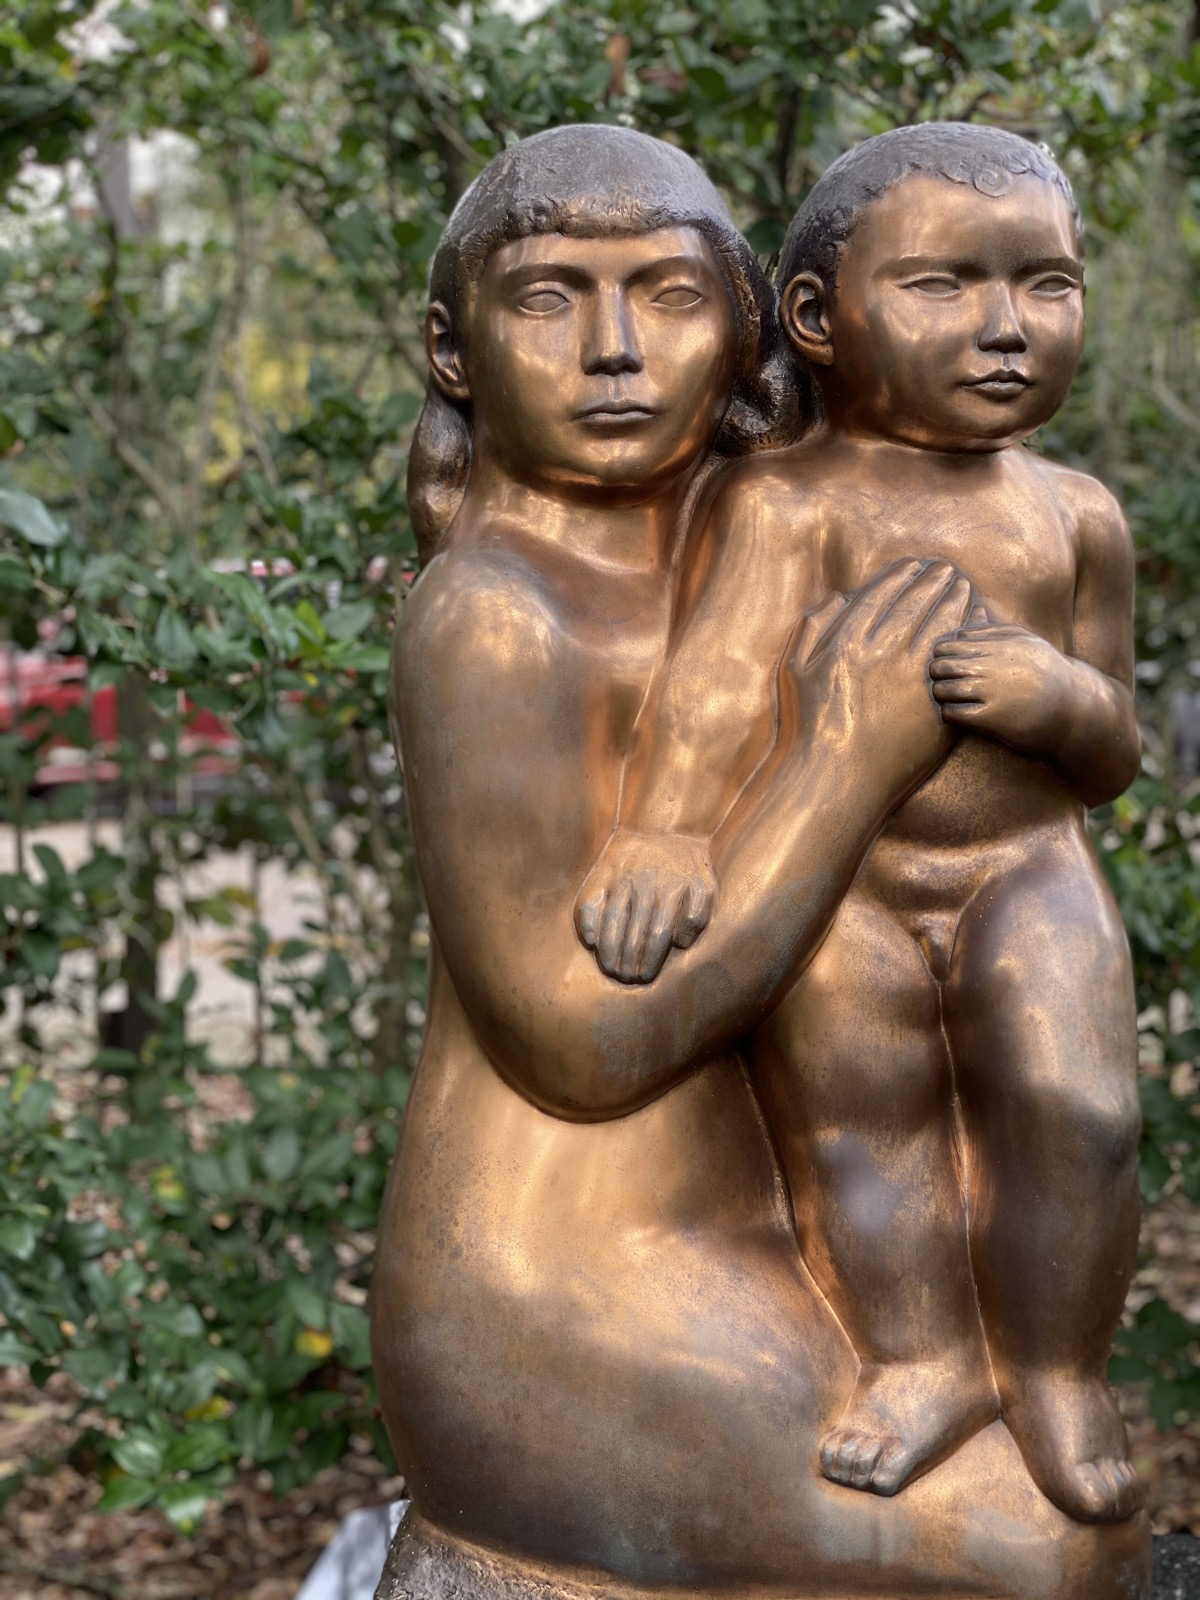 A bronze woman holding a child standing on her lap